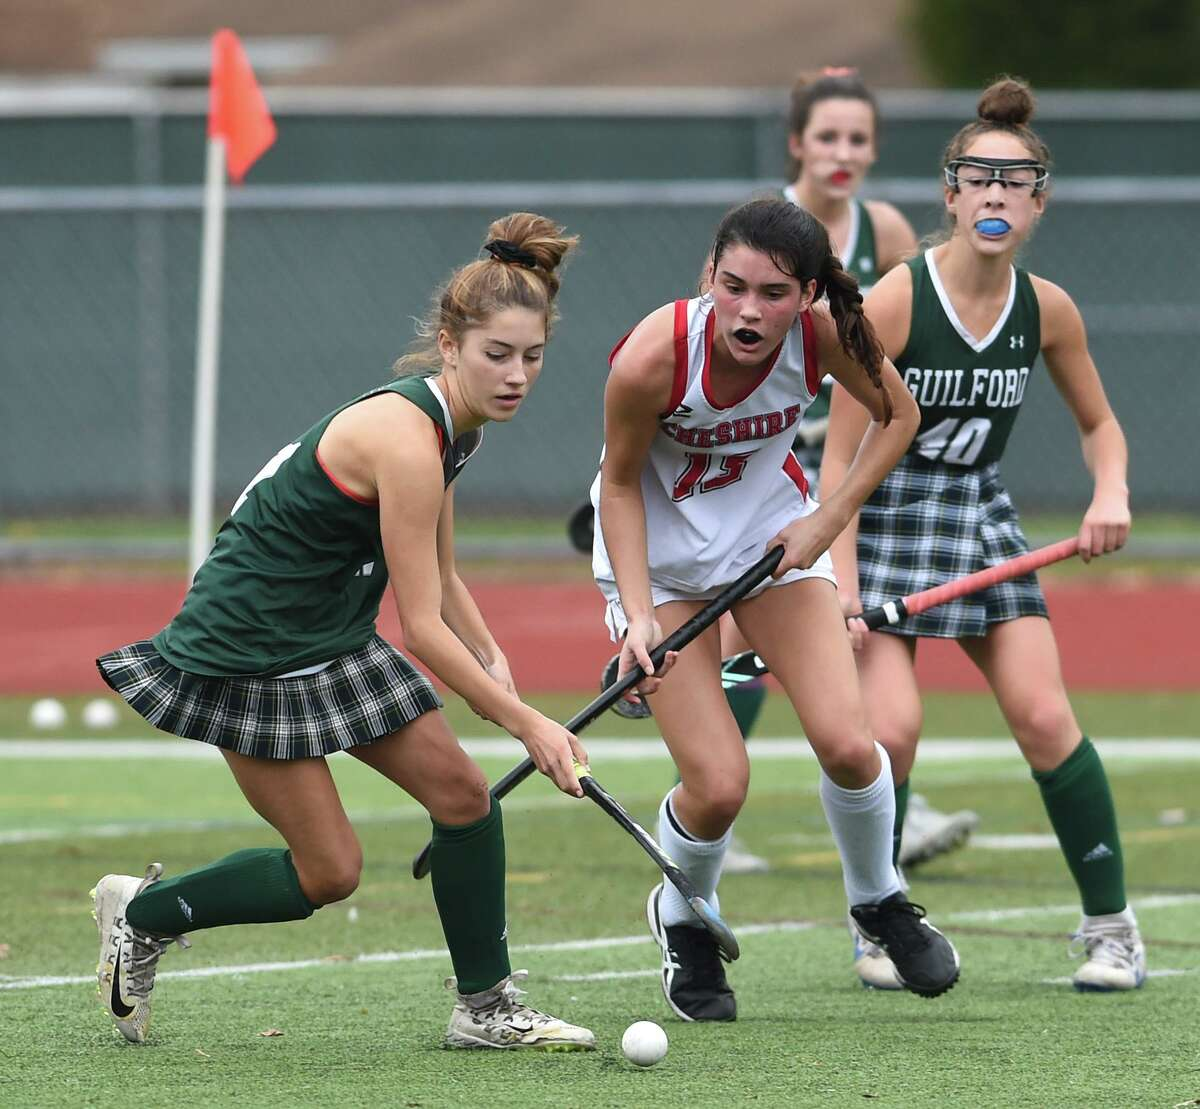 Guilford's Ella Clarke, left, and Cheshire's Lauren Houle fight for the ball in the SCC Division A field hockey championship at Cheshire High in 2020.